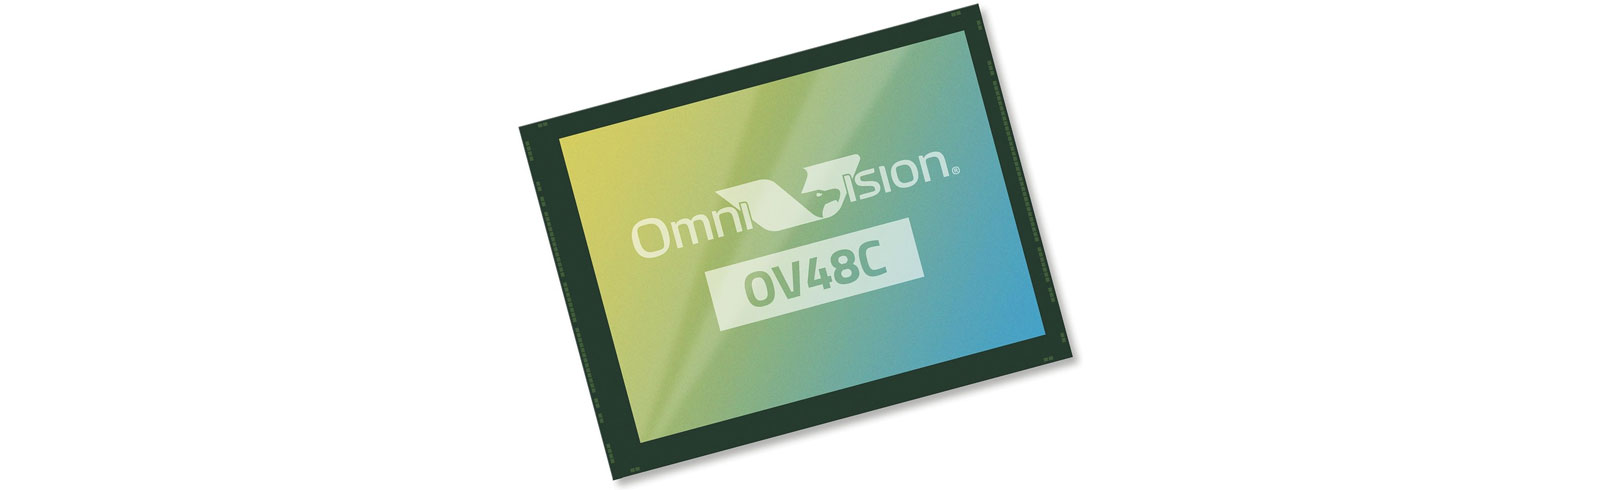 OmniVision OV48C is a new 48MP image sensor for mobile devices